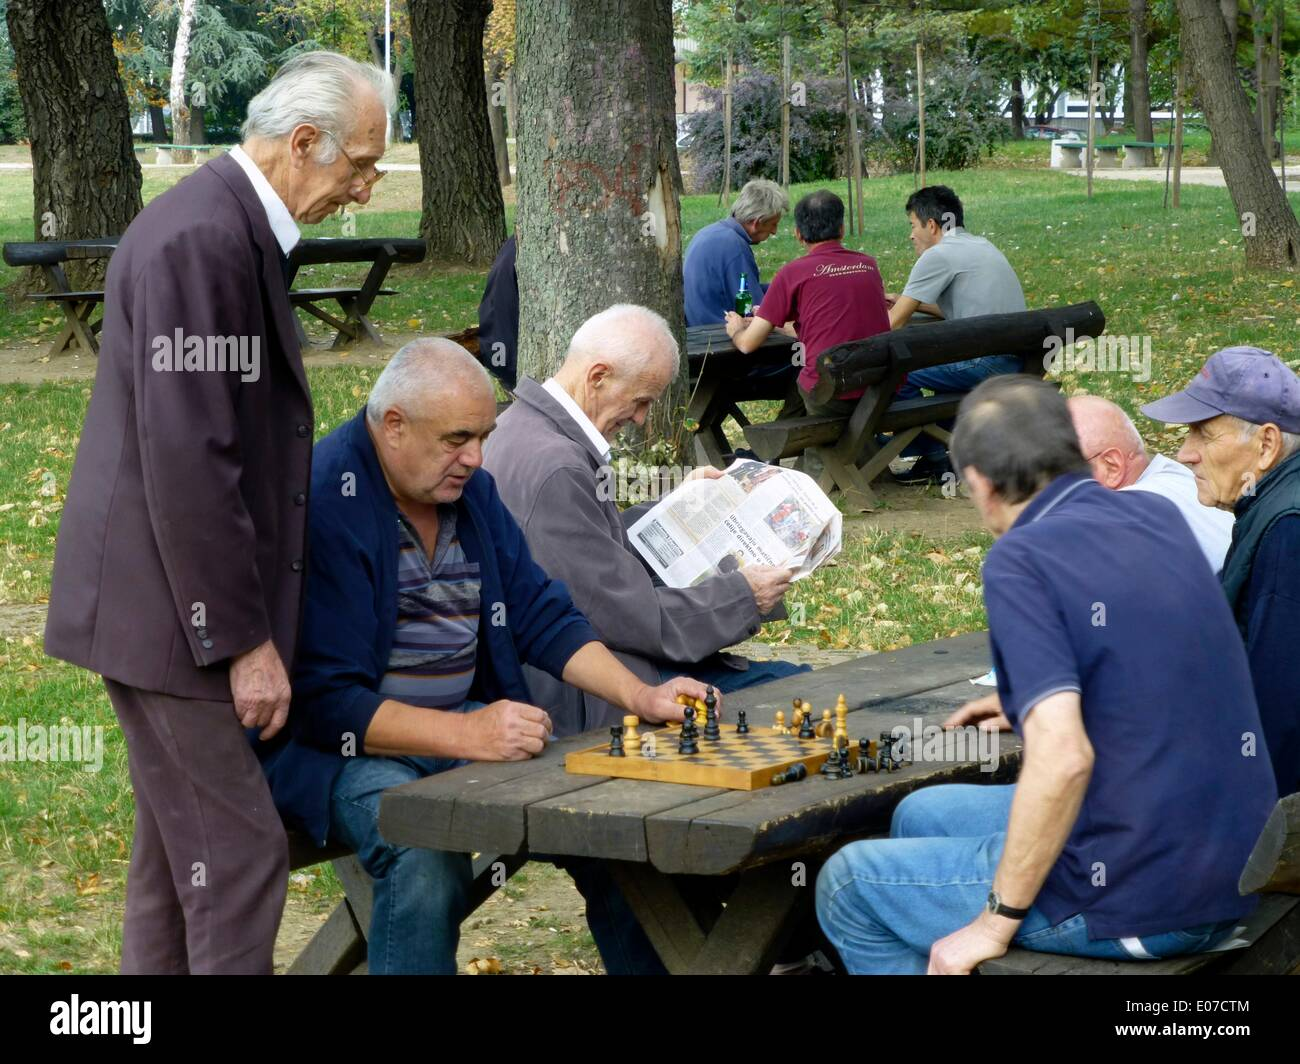 Belgrade, Serbia. 21st Oct, 2013. Elderly people play chess in a park in Belgrade, Serbia, 21 October 2013. Photo: Berliner Verlag/Steinach - NO WIRE SERVICE/dpa/Alamy Live News - Stock Image